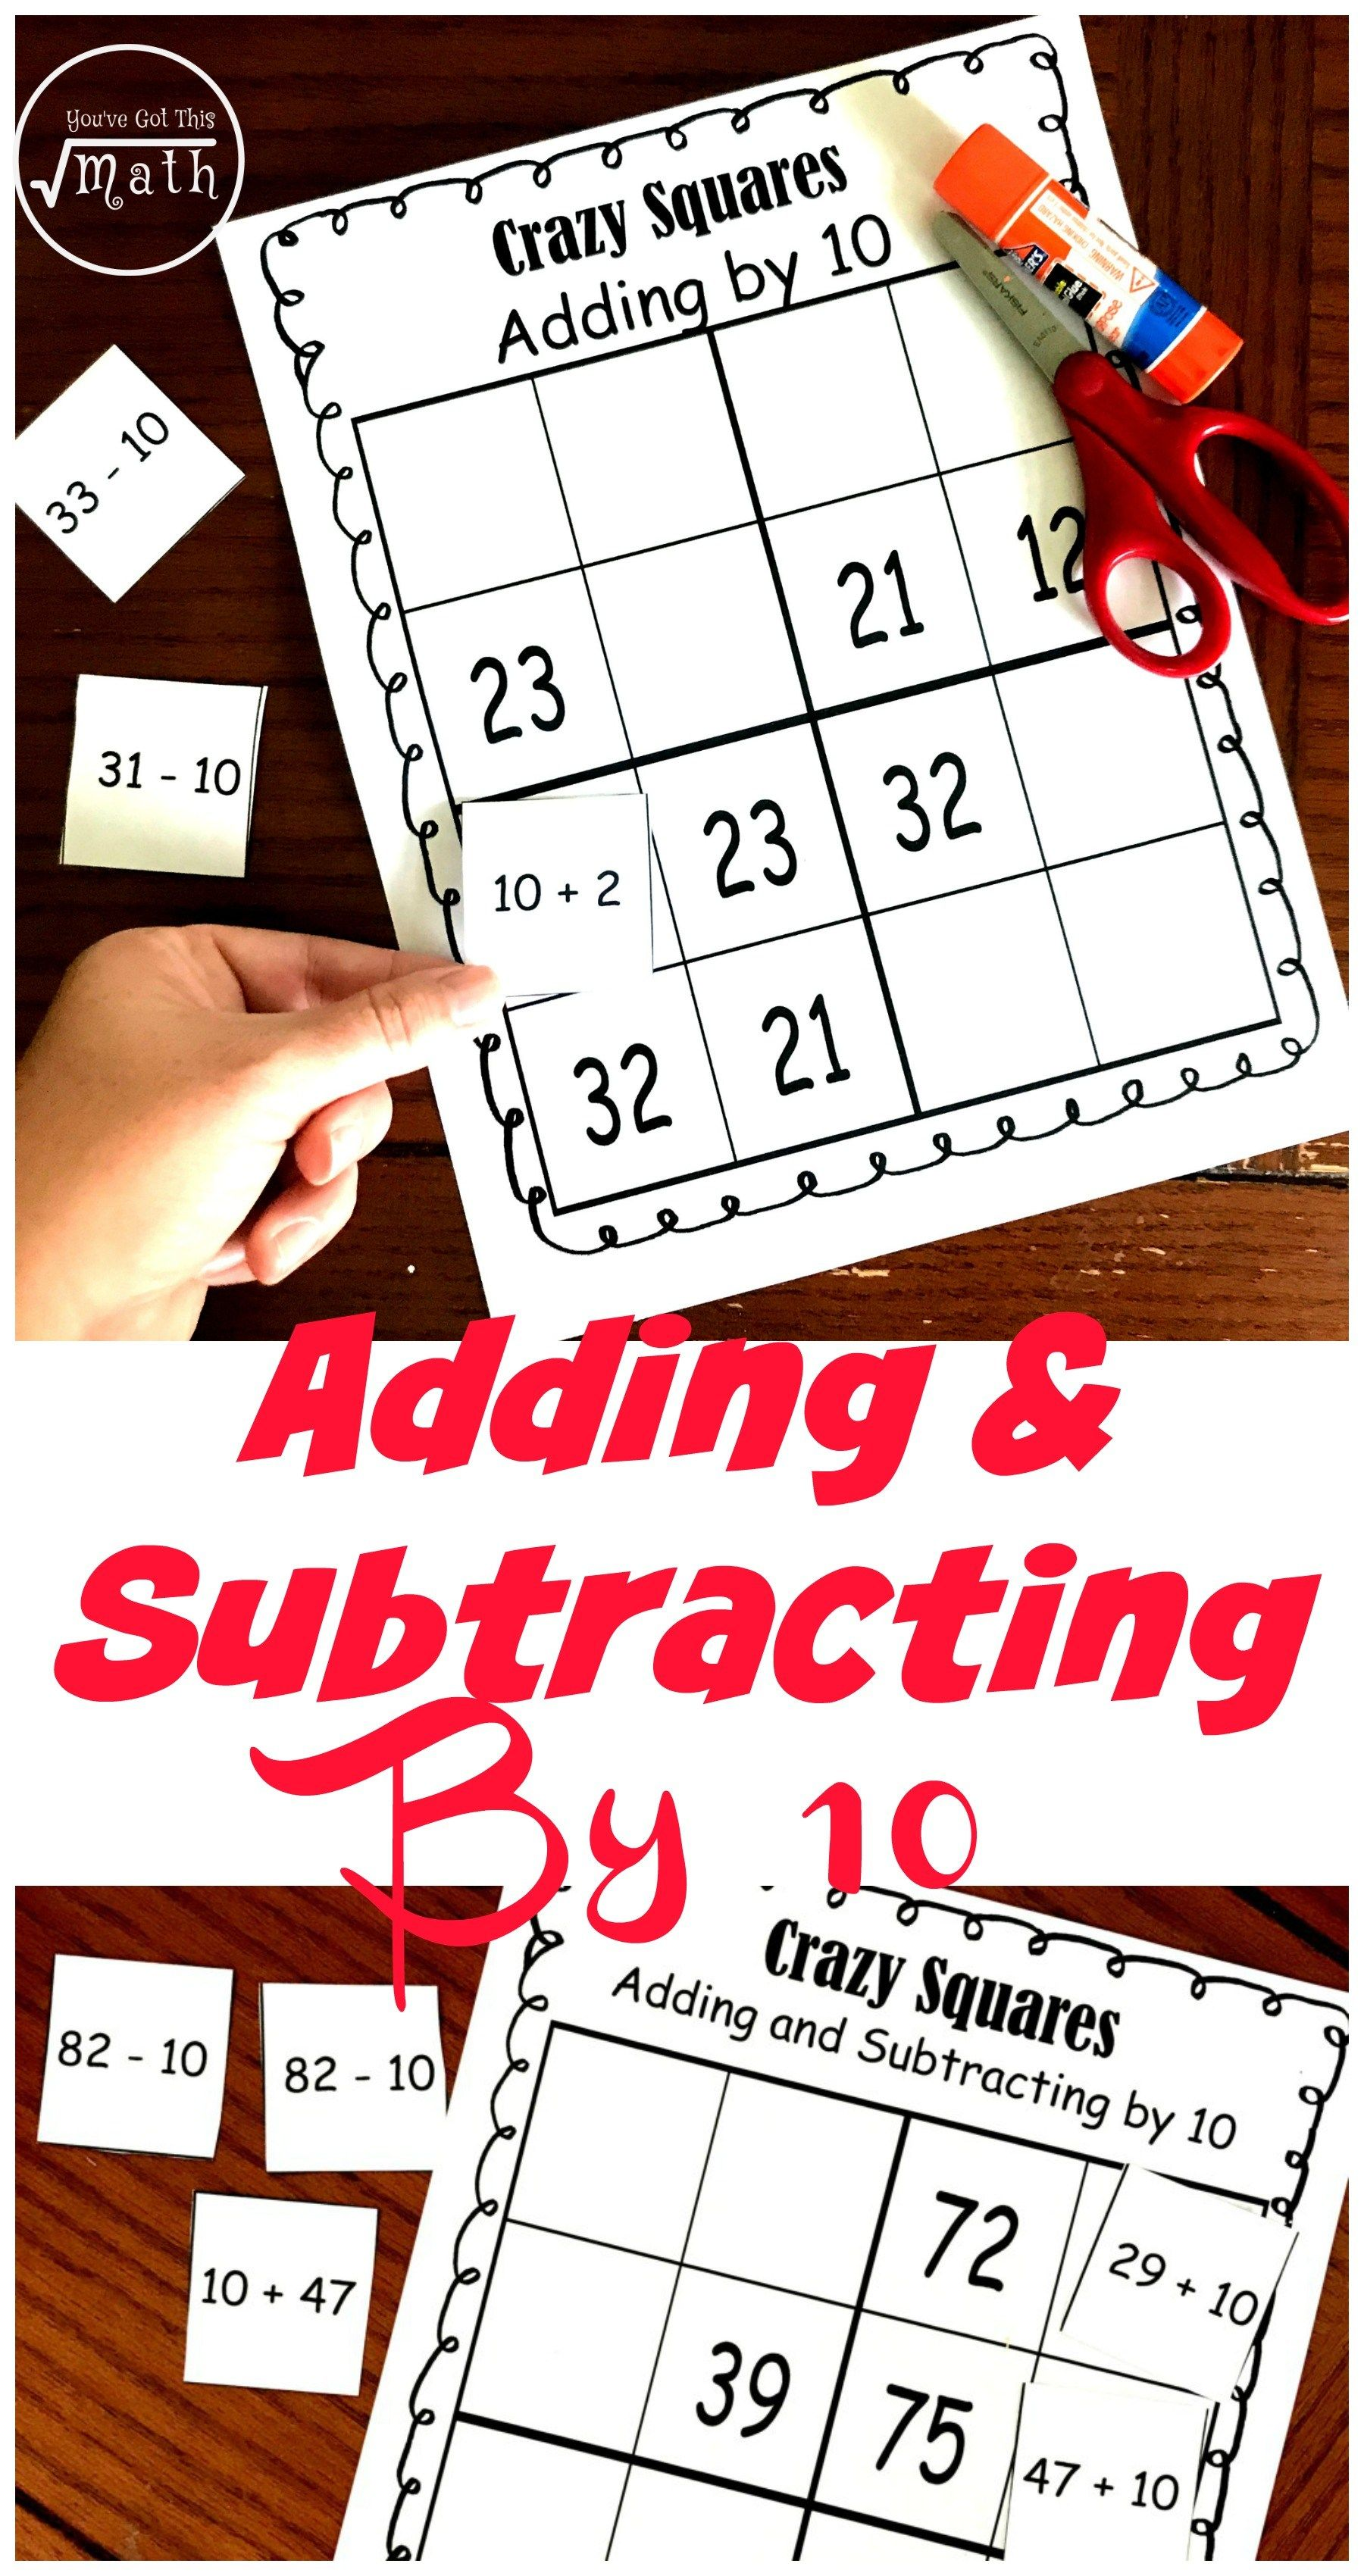 Get A Free Adding By 10 Activity To Challenge Students Adding And Subtracting Fun Education Subtraction Mental math addition activities